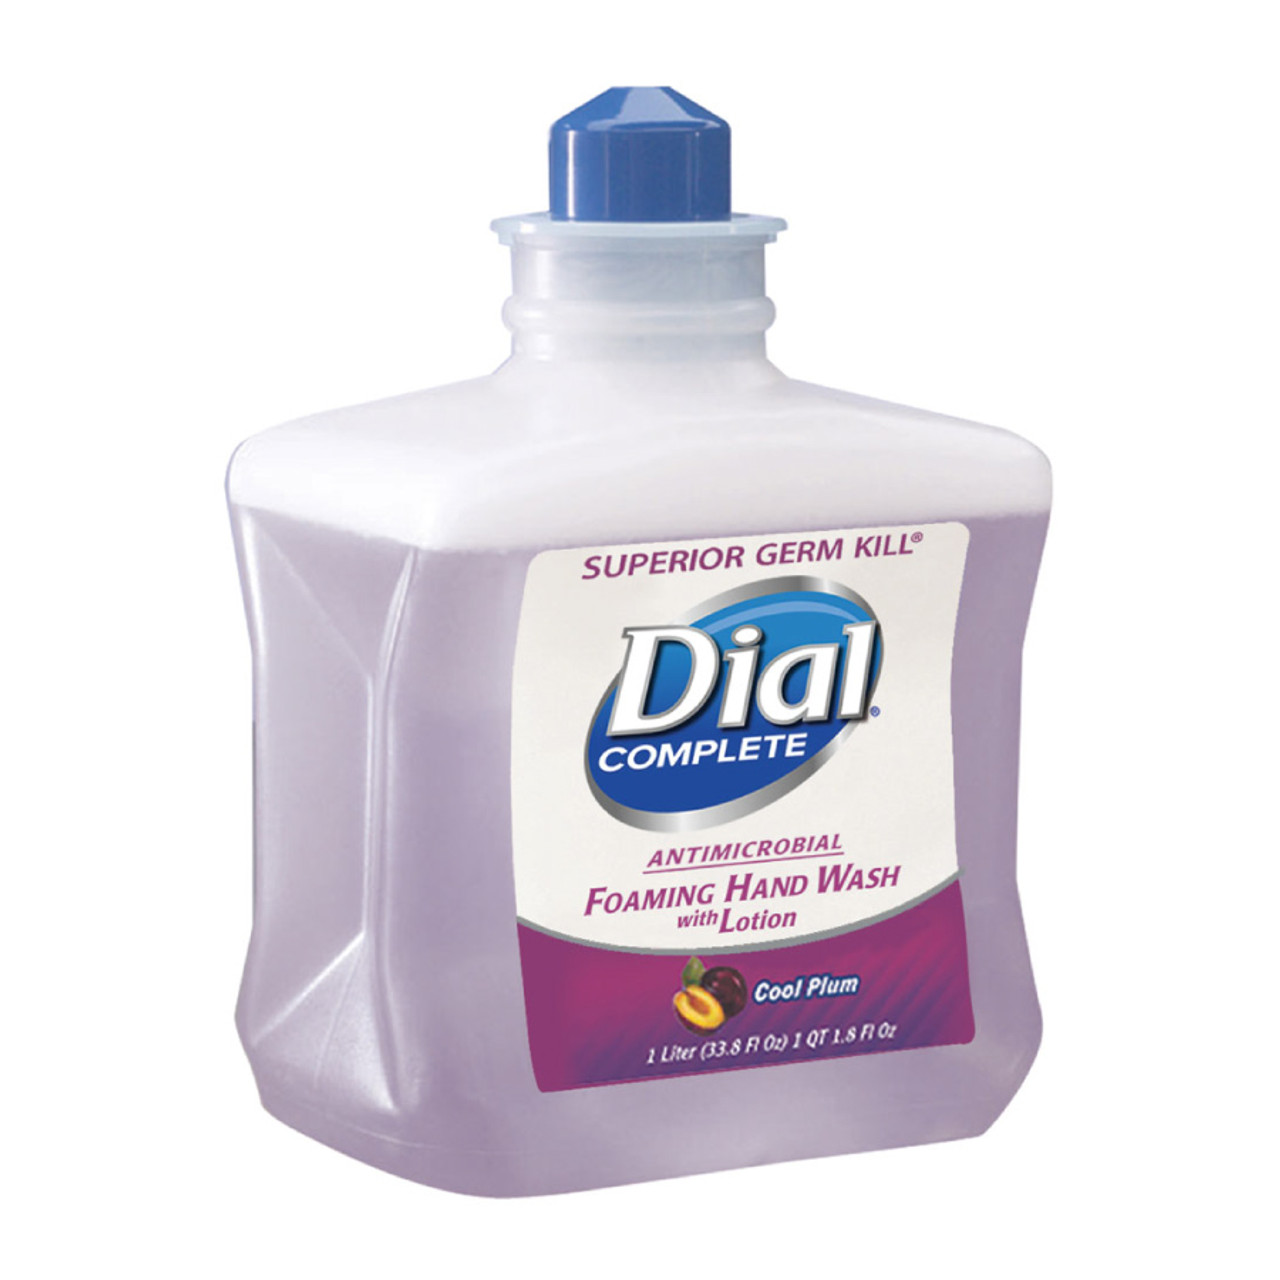 Hand Soap Refill Dial Foaming Hand Wash Refill Cool Plum Scent 1000 Ml Dia81033ct 4 Refills Case